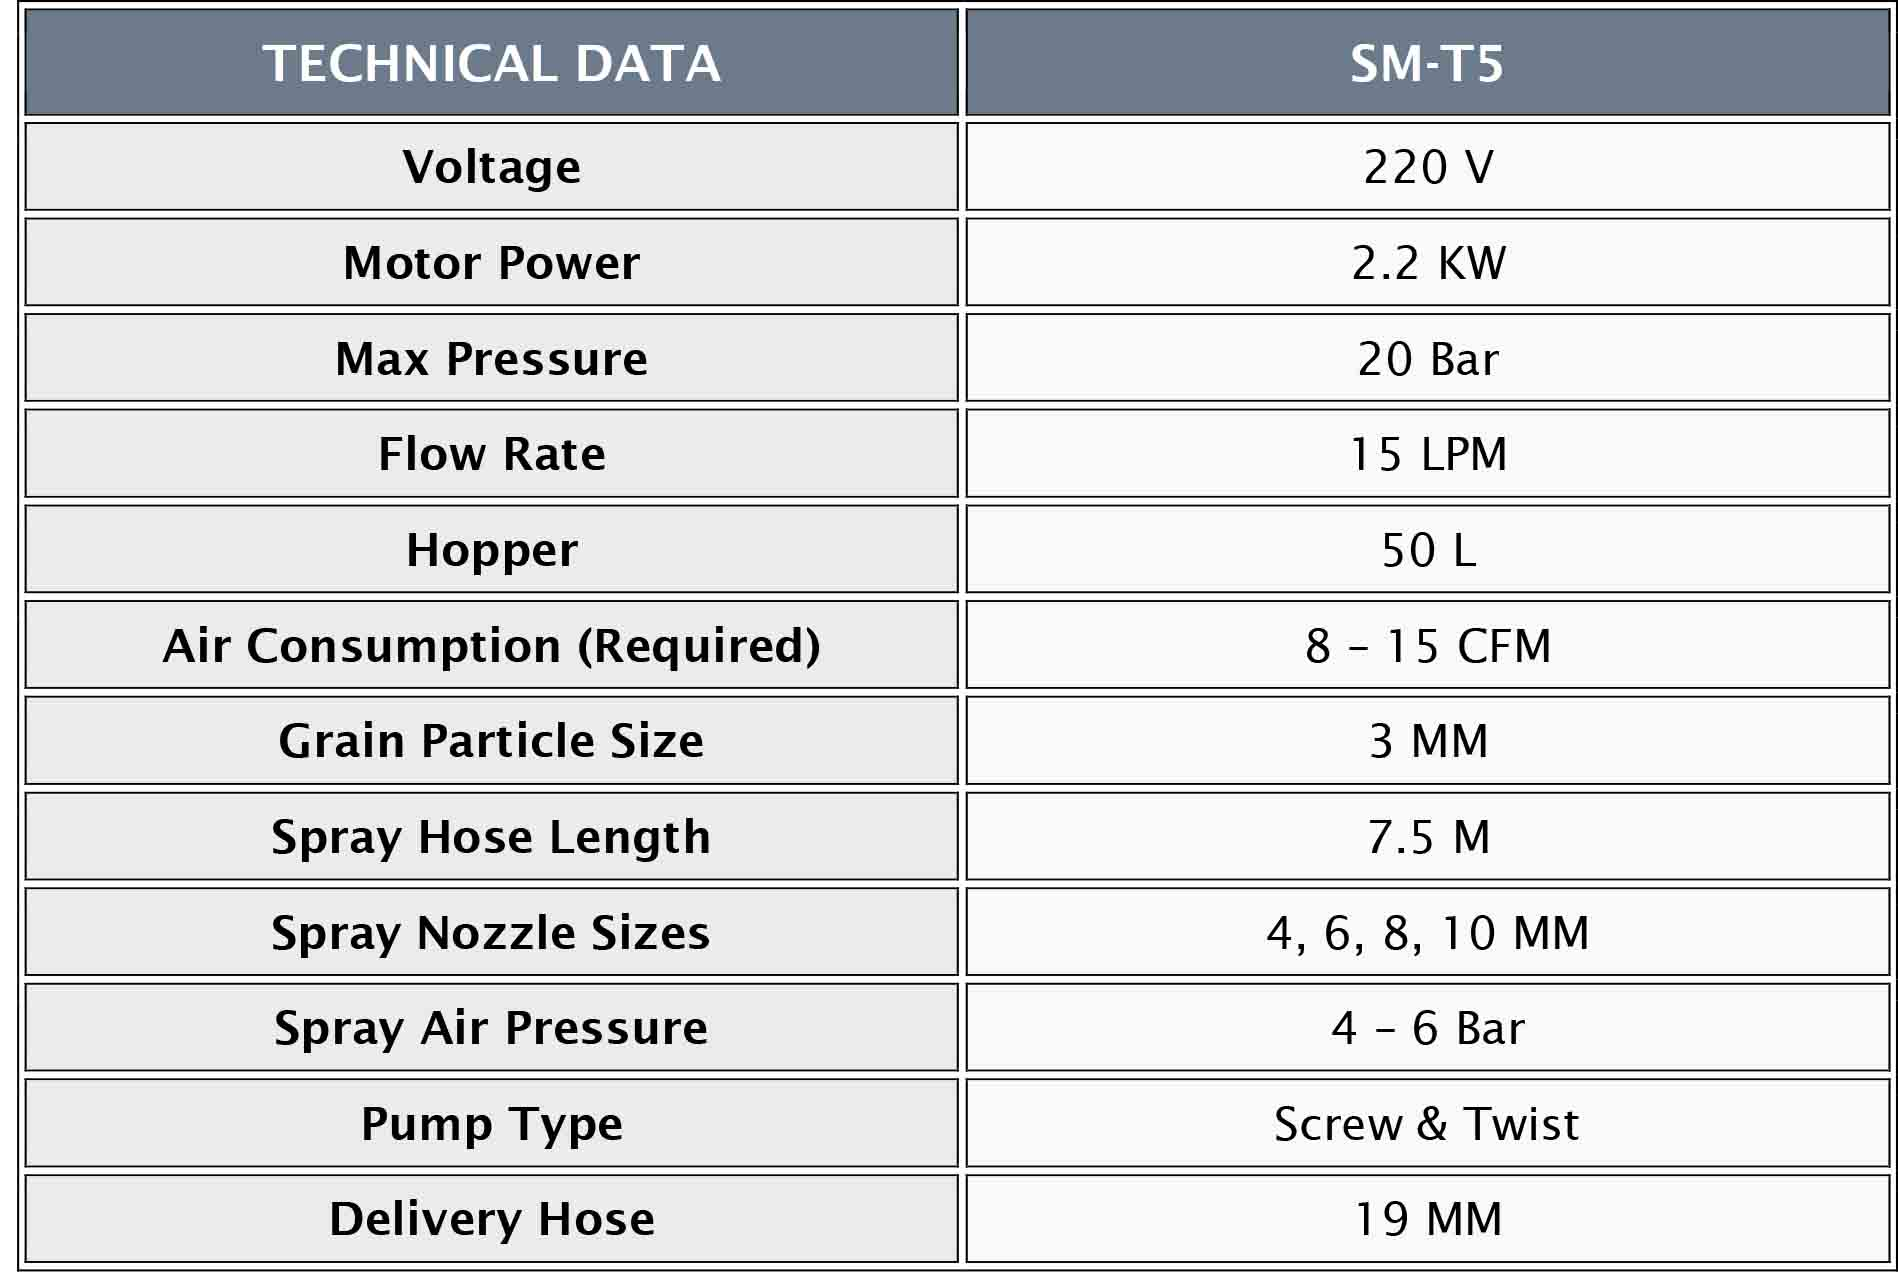 SM_T5 TECHNICAL DATA TABLE